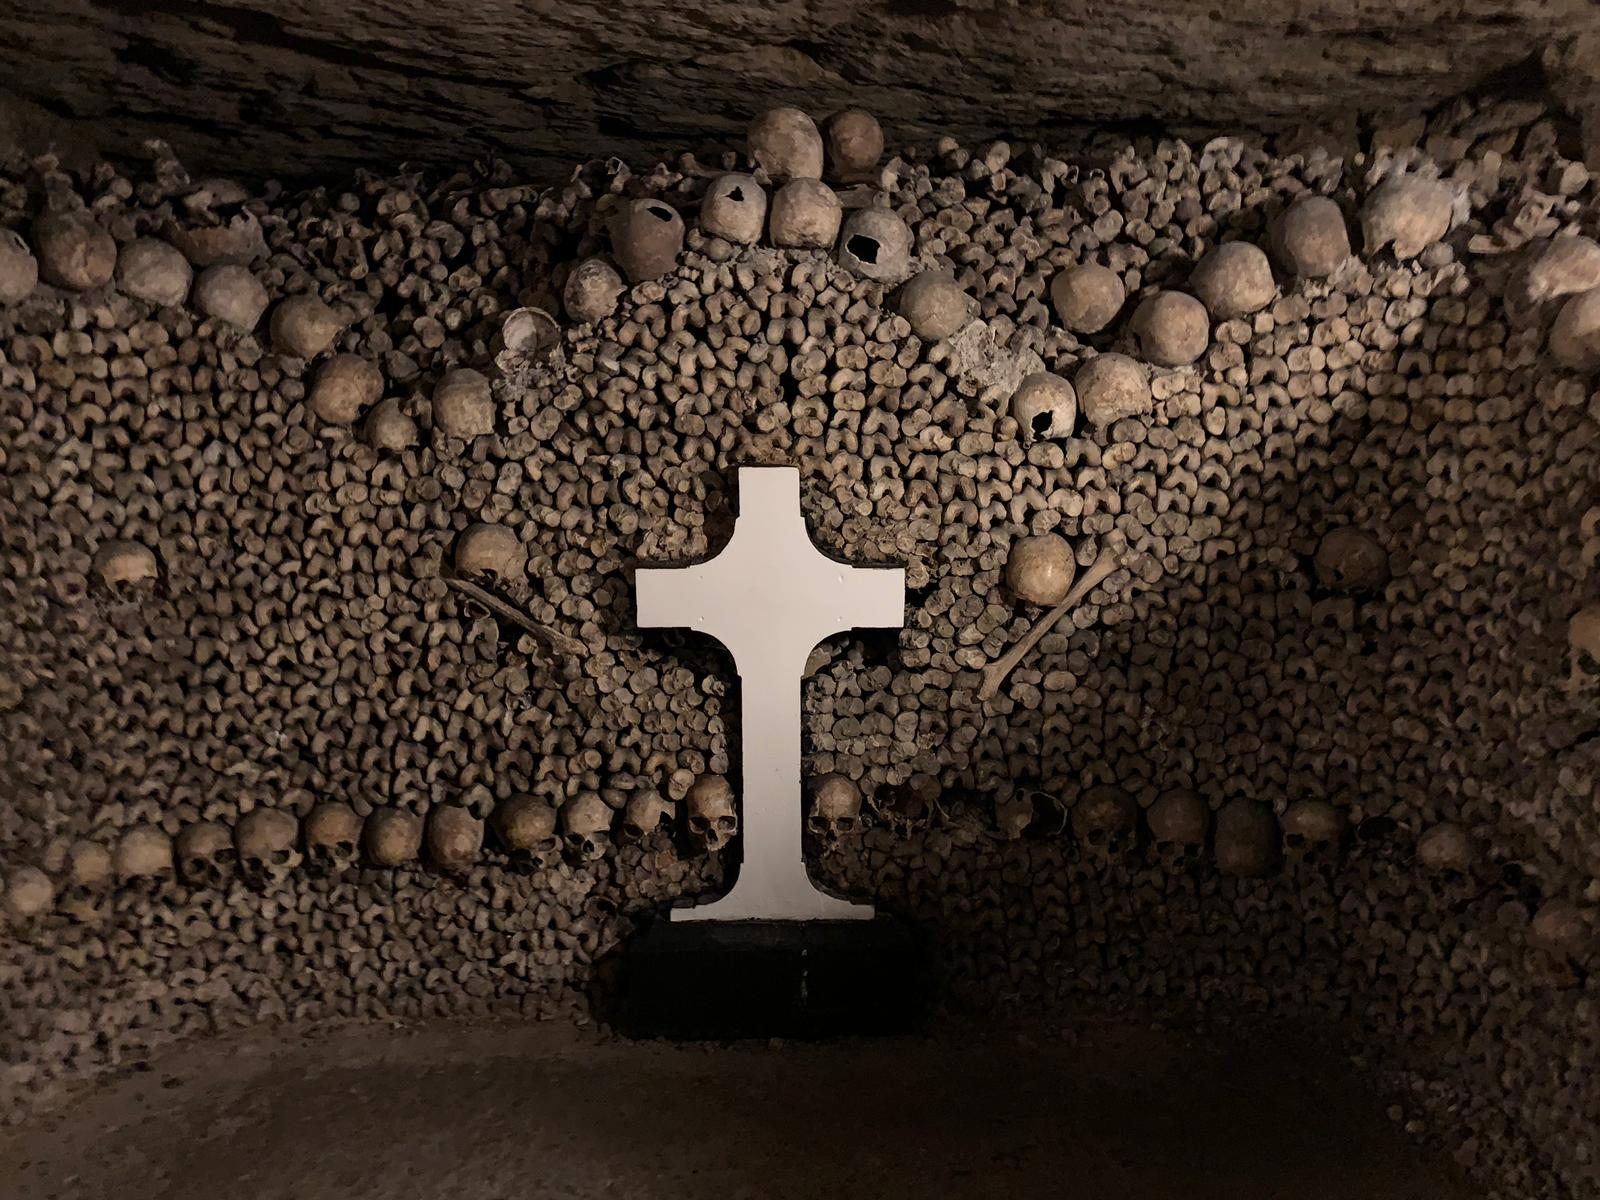 Hundreds of femur bones line a cave wall, with some rows of skulls stacked between femurs. A cross is at the center of the bone stack.